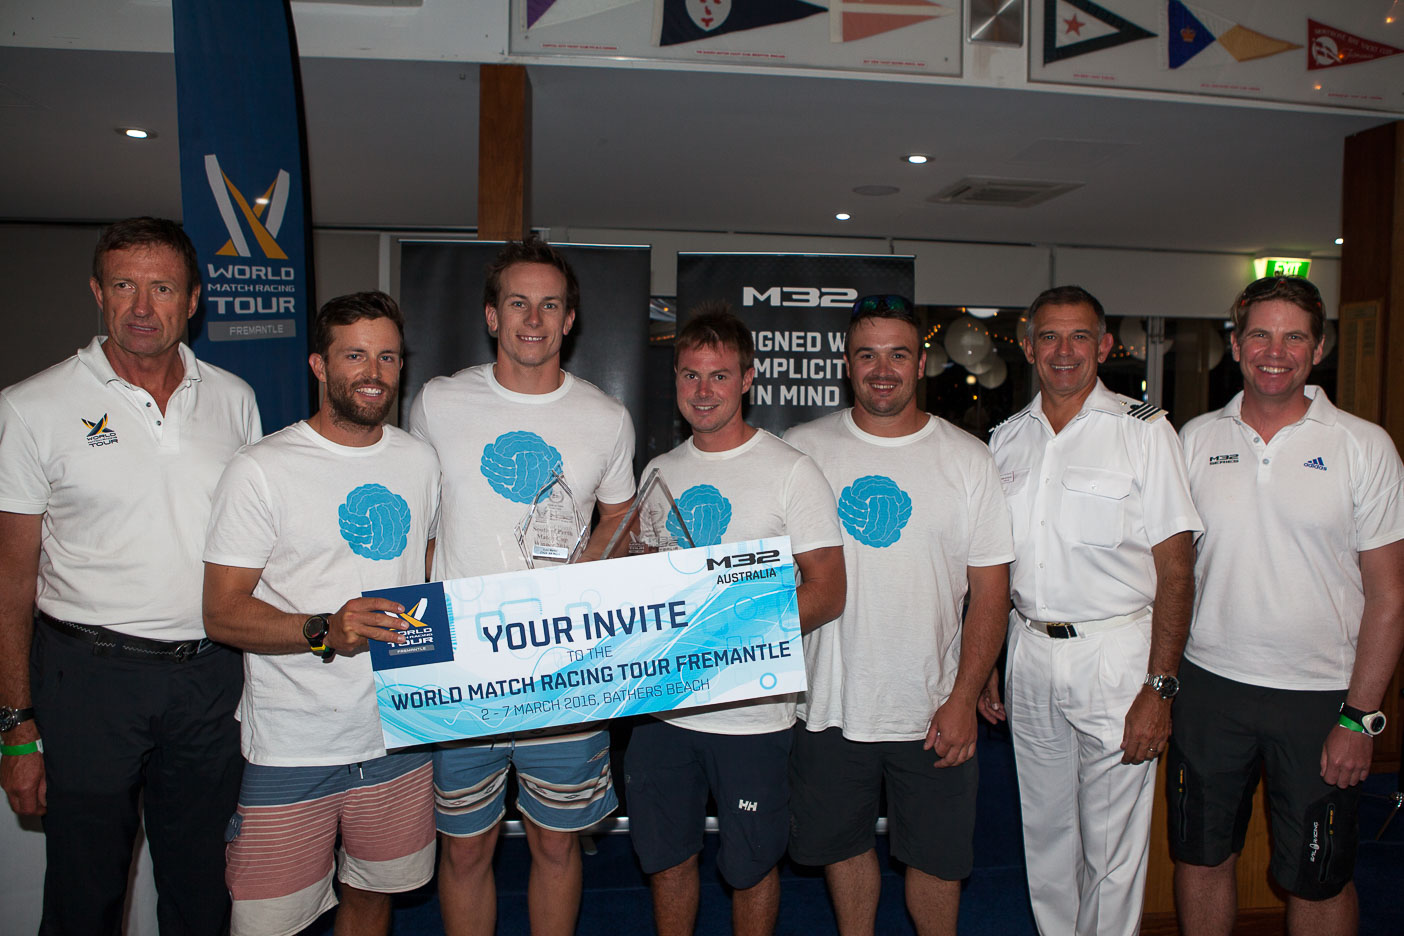 A delighted Evan Walker (second from left) receives his invitation to the World Match Tour Event at Fremantle next week after winning the South of Perth Match Cup. Photo Bernie Kaaks.